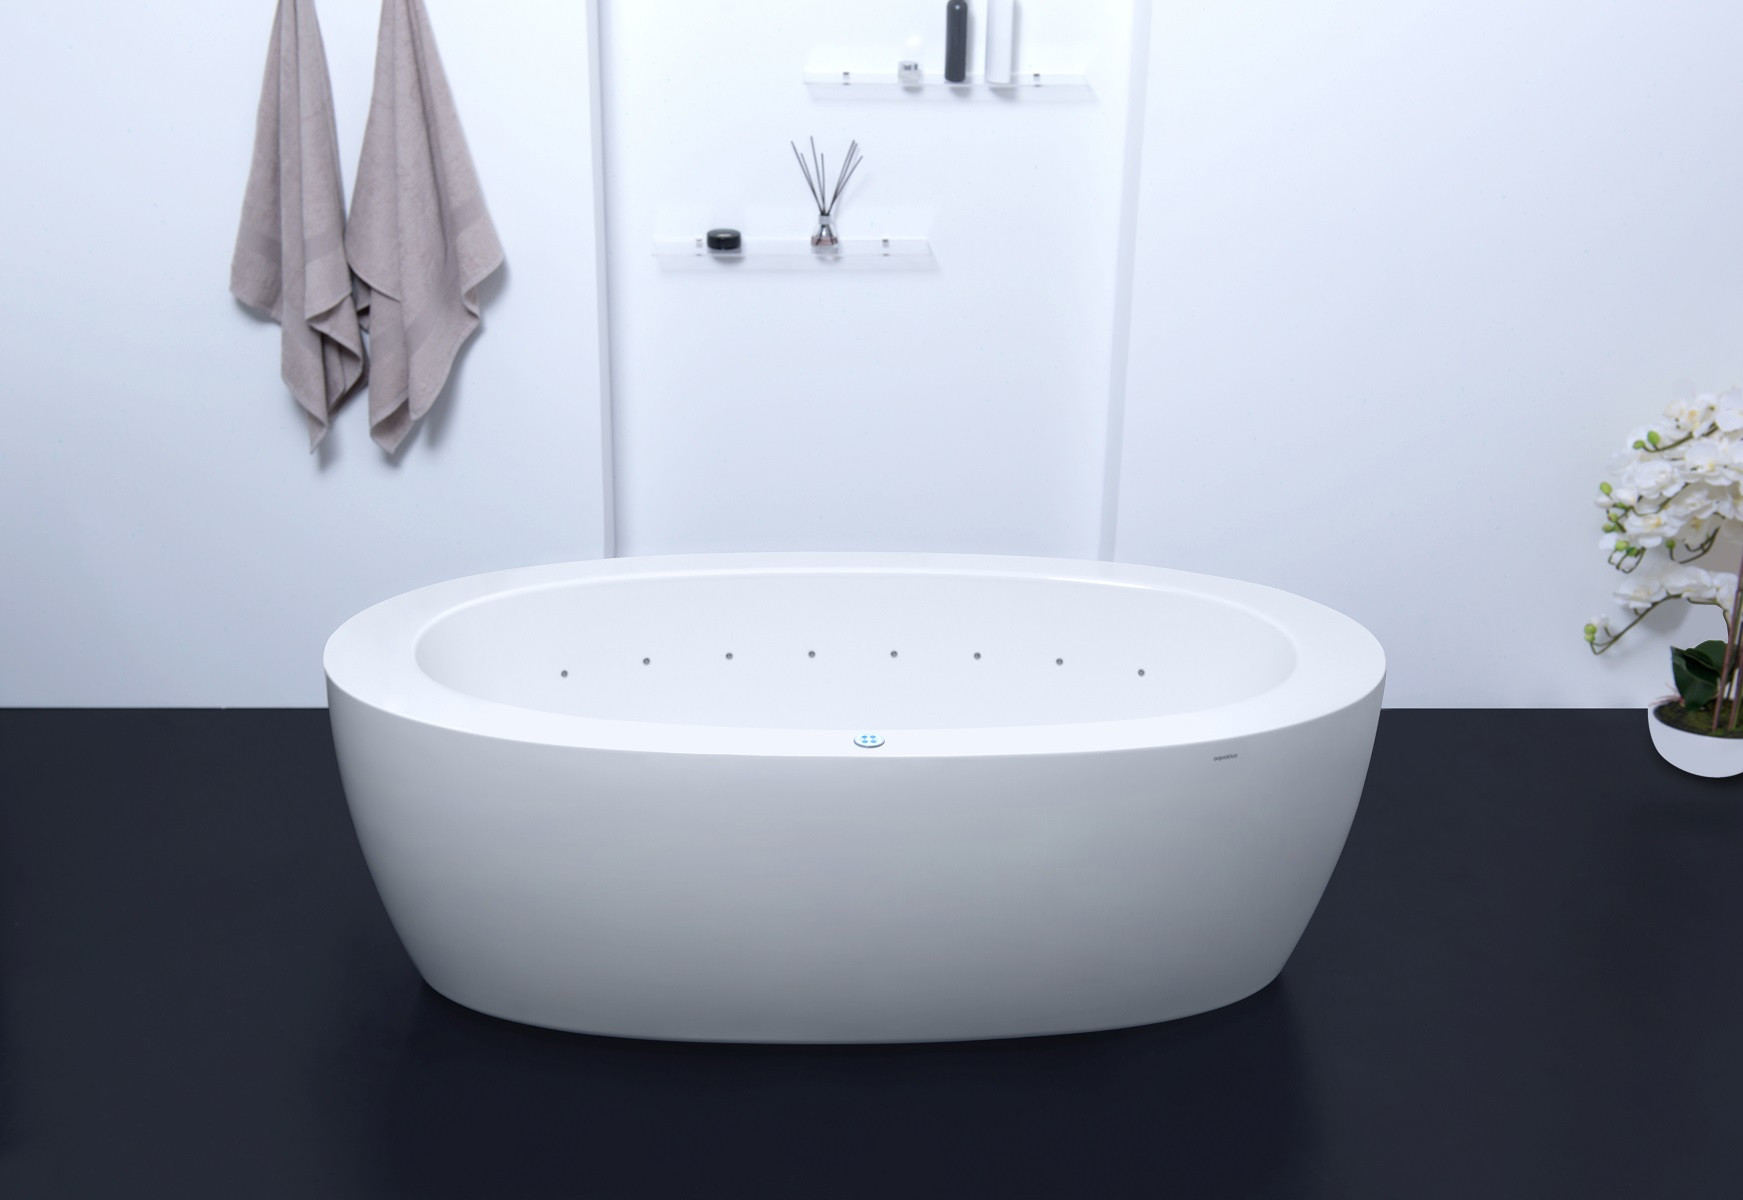 Aquatica PS174B-Wht-Rlx Purescape Free Standing Relax Air Massage Bathtub in White